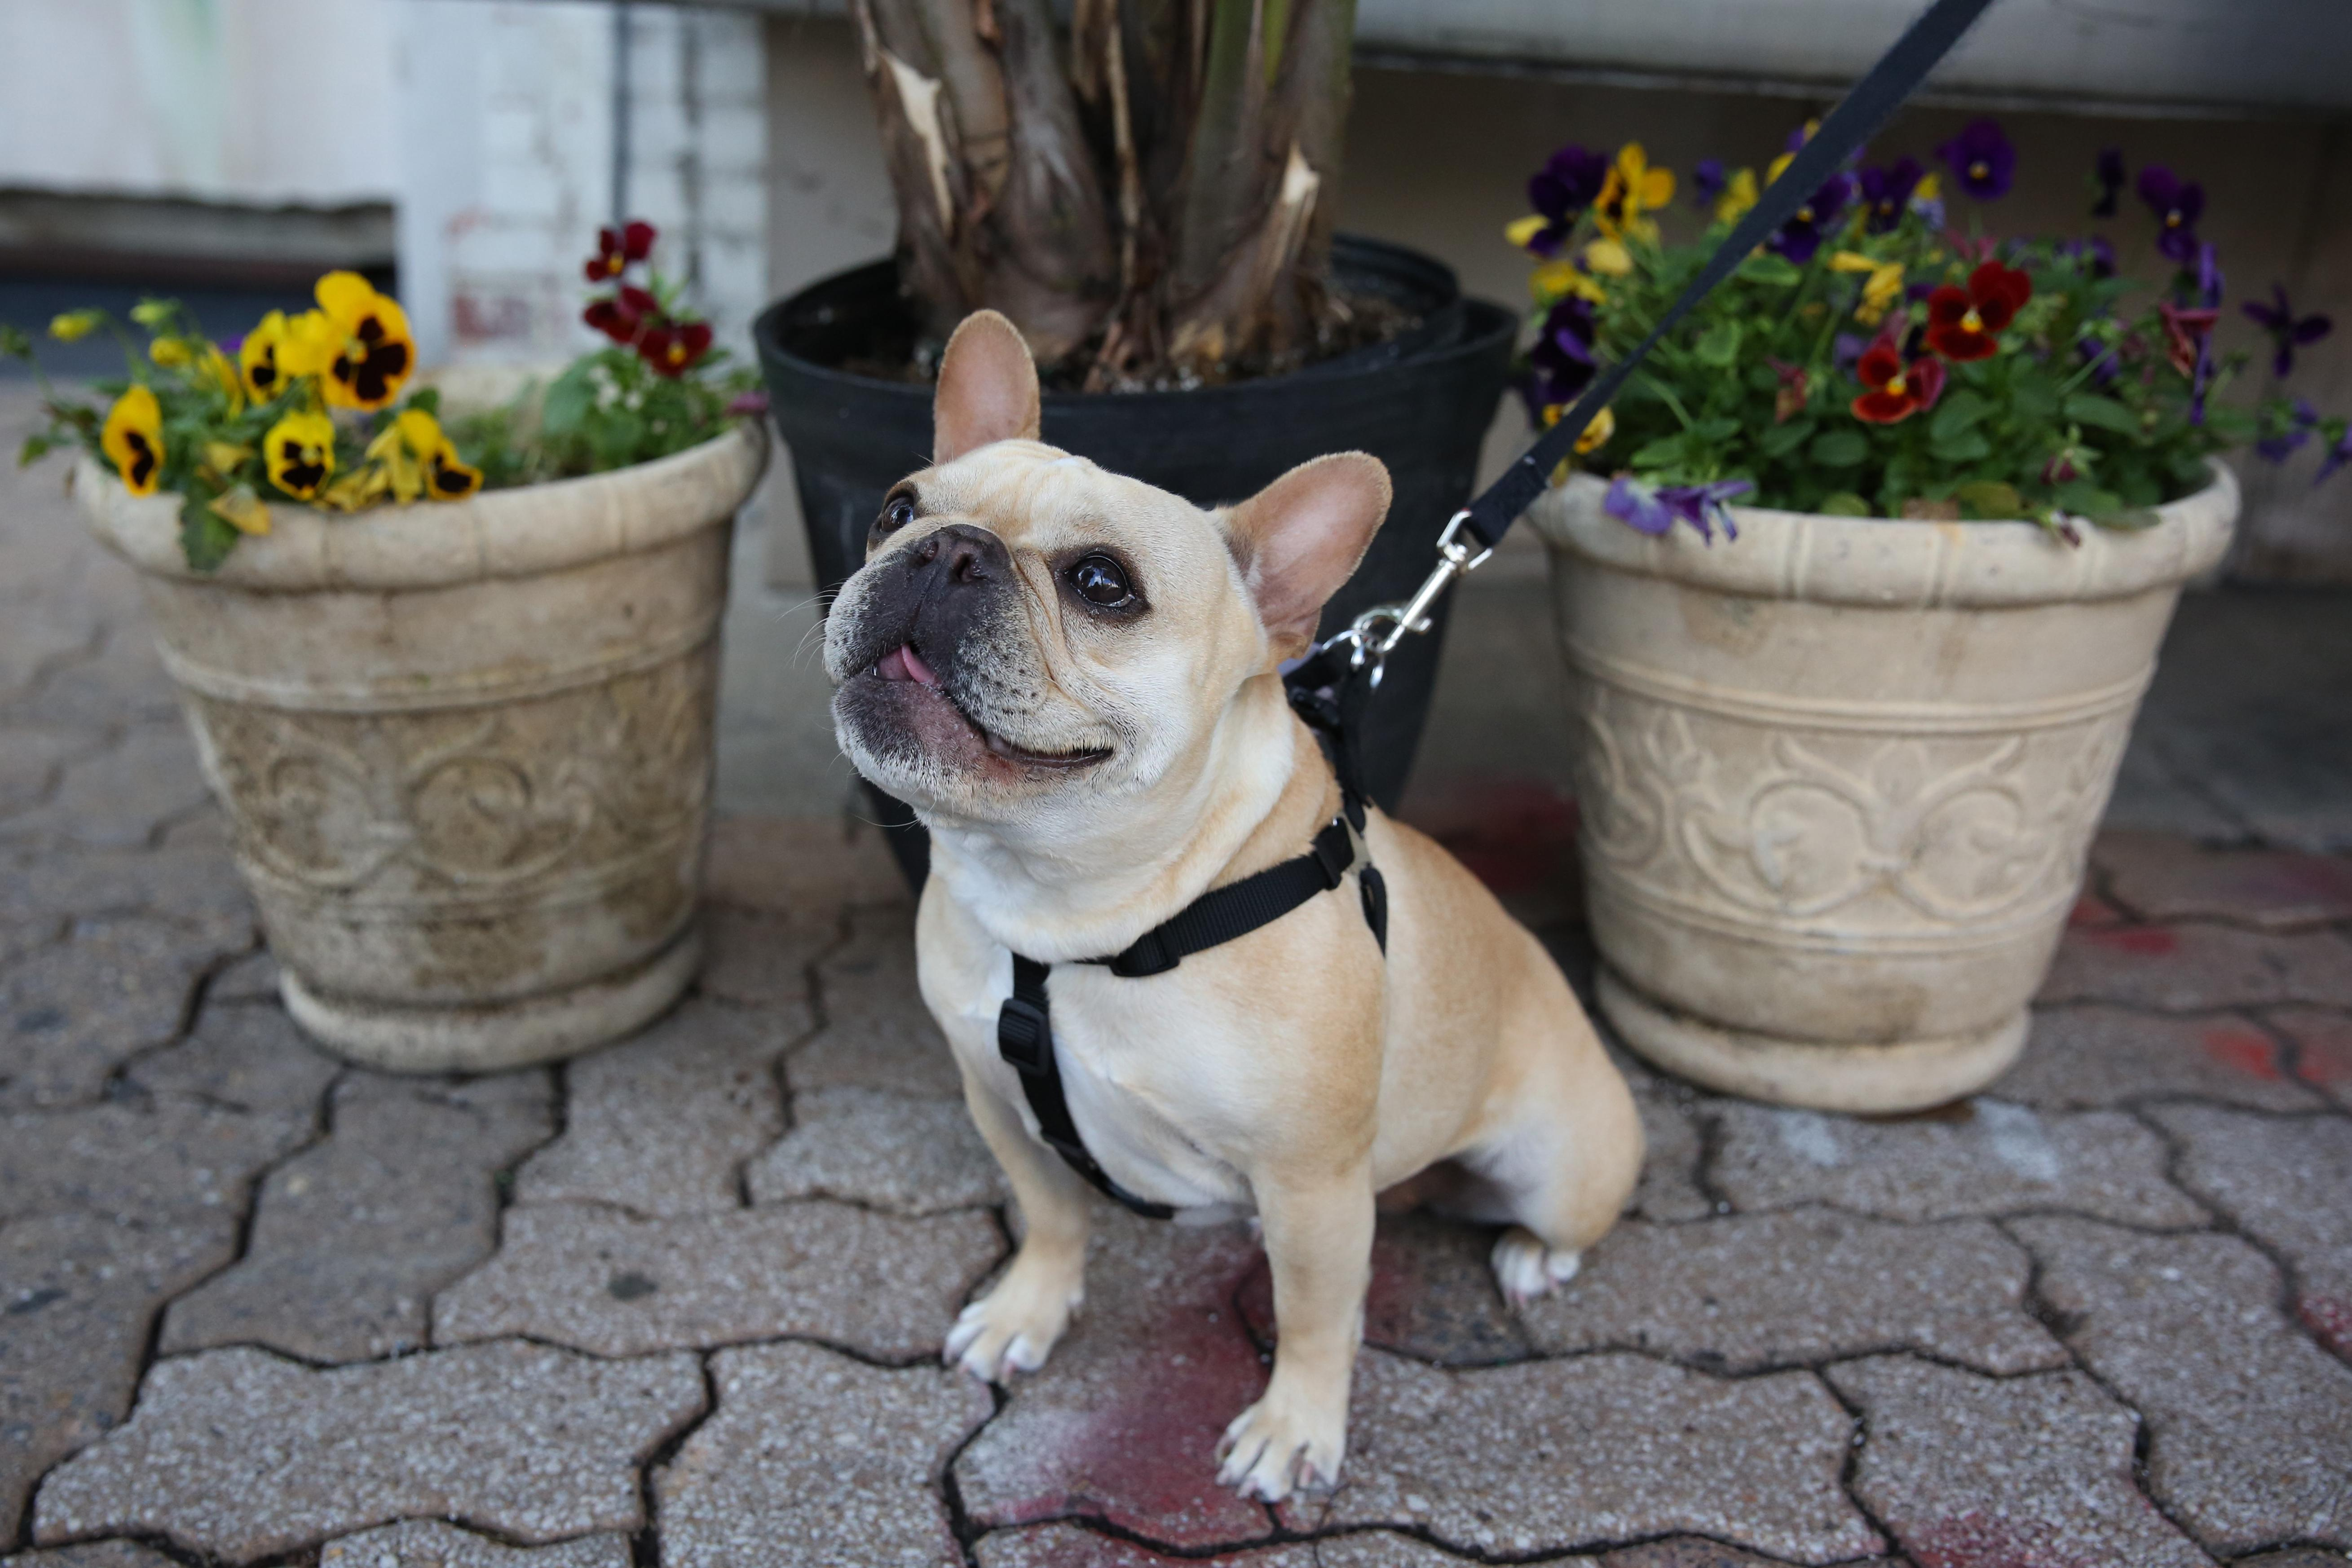 Meet little Miss Penelope, a 2.5-year-old French Bulldog who completed her little family when she came home in January 2015. Penelope is the ultimate cuddle buddy and just wants to be close to people all day every day. She has a long list of likes: peanut butter, licking people's faces, peanut butter, sitting on your feet to keep you from leaving, peanut butter, snuggling with her humans, a good sun spot to lay in... and did we mention peanut butter?  Her only dislikes are weather-related: rain and snow. She's highly skilled at fitting herself into smaller spaces than one would expect -- like under the bed, under chairs, etc. and she's convinced she's winning the battle against both the vacuum and the Swiffer. You can follow all of this little diva's adventures on her Instagram @MissPenelopeFrenchie! If you or someone you know has a pet you'd like featured, email us at dcrefined@gmail.com or tag #DCRUFFined and your furbaby could be the next spotlighted! (Image: Amanda Andrade-Rhoades/ DC Refined)